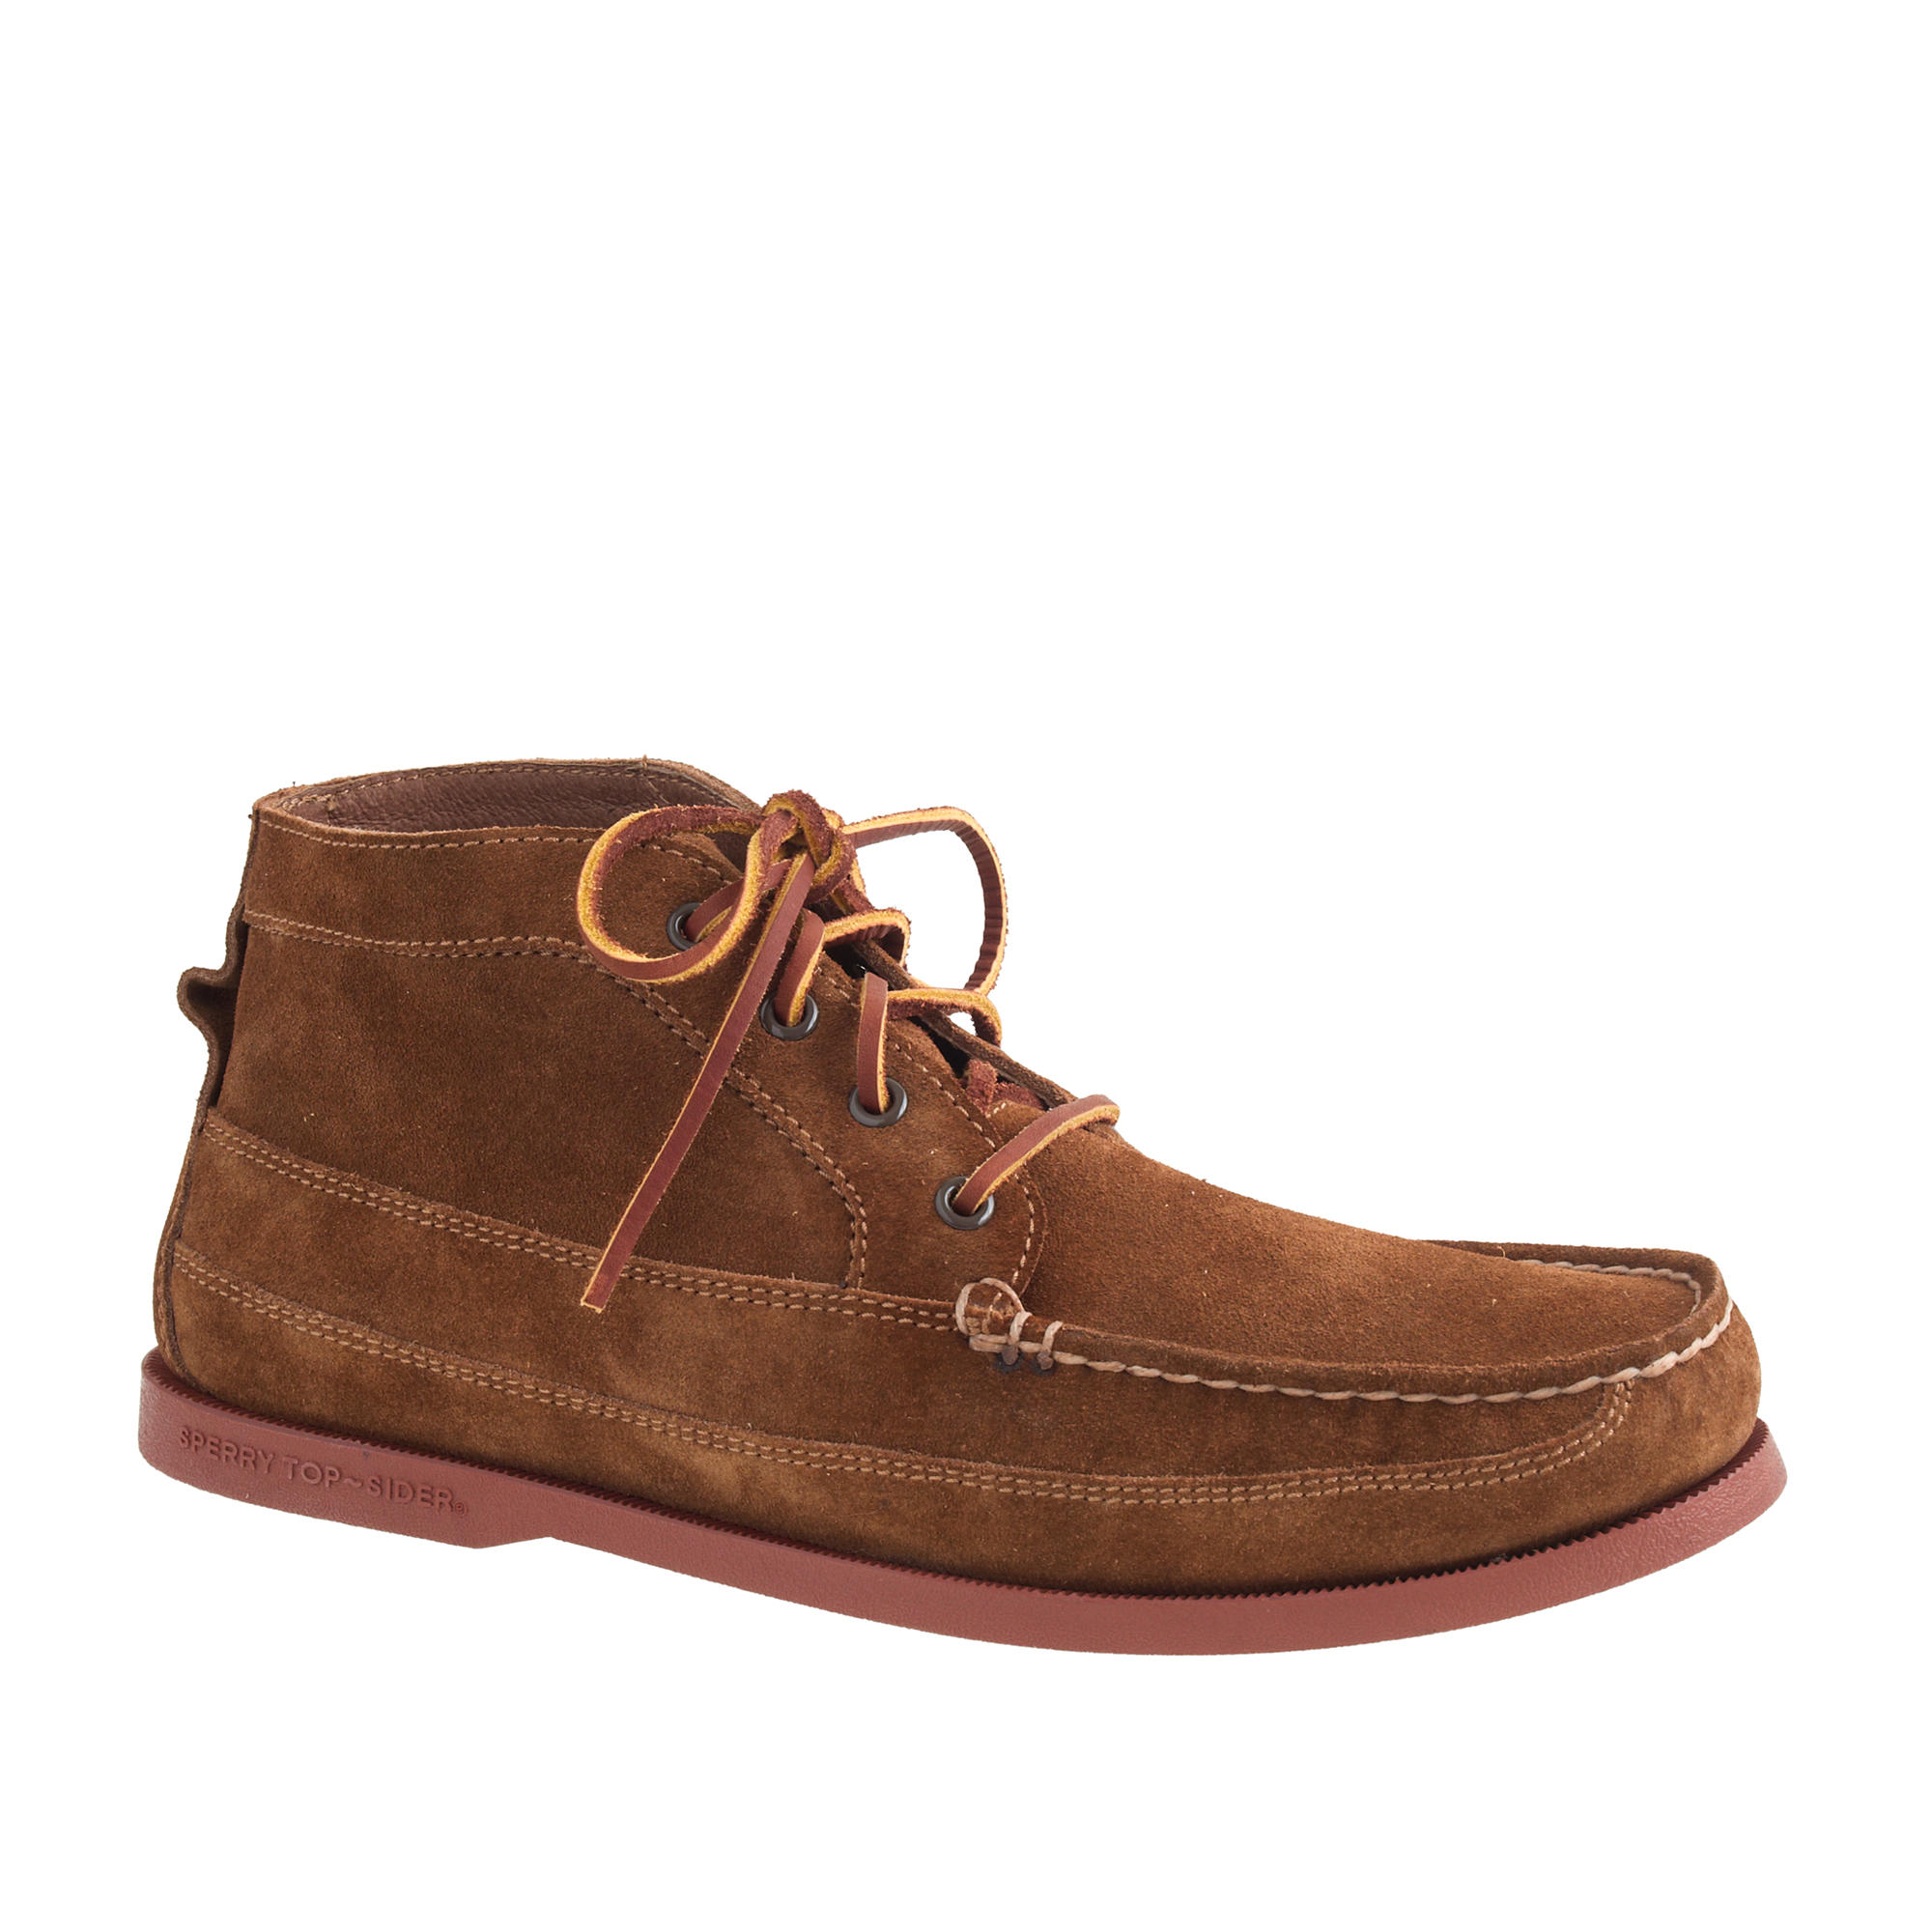 sperry top sider suede chukka boots in brown for lyst